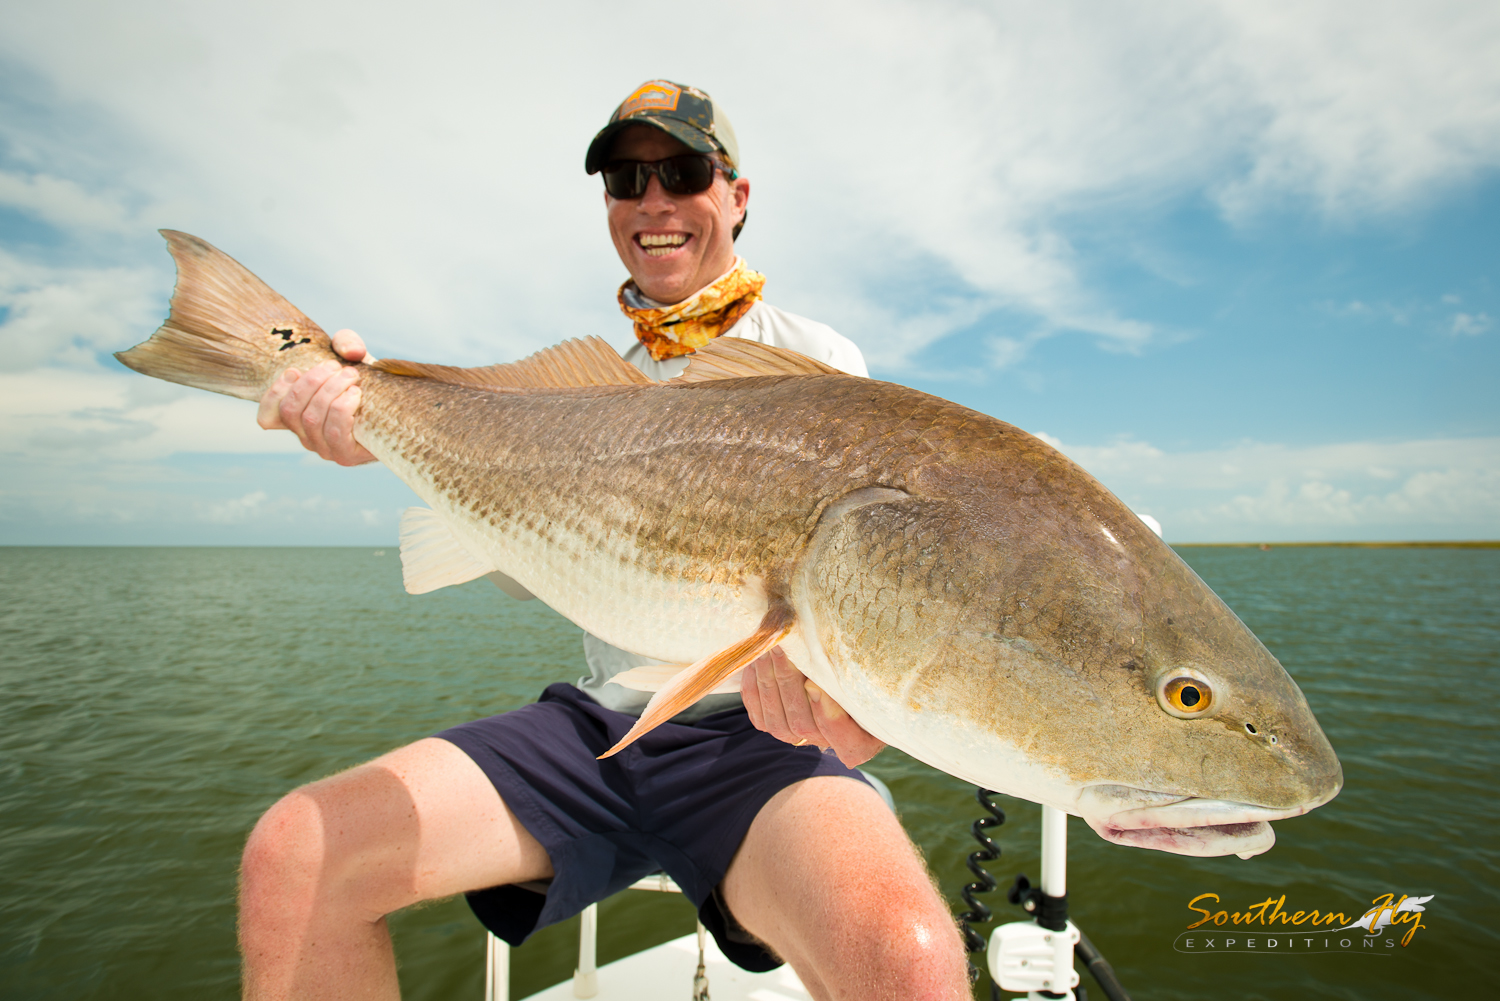 fishing charters louisiana - Southern Fly Expeditions redfish guide